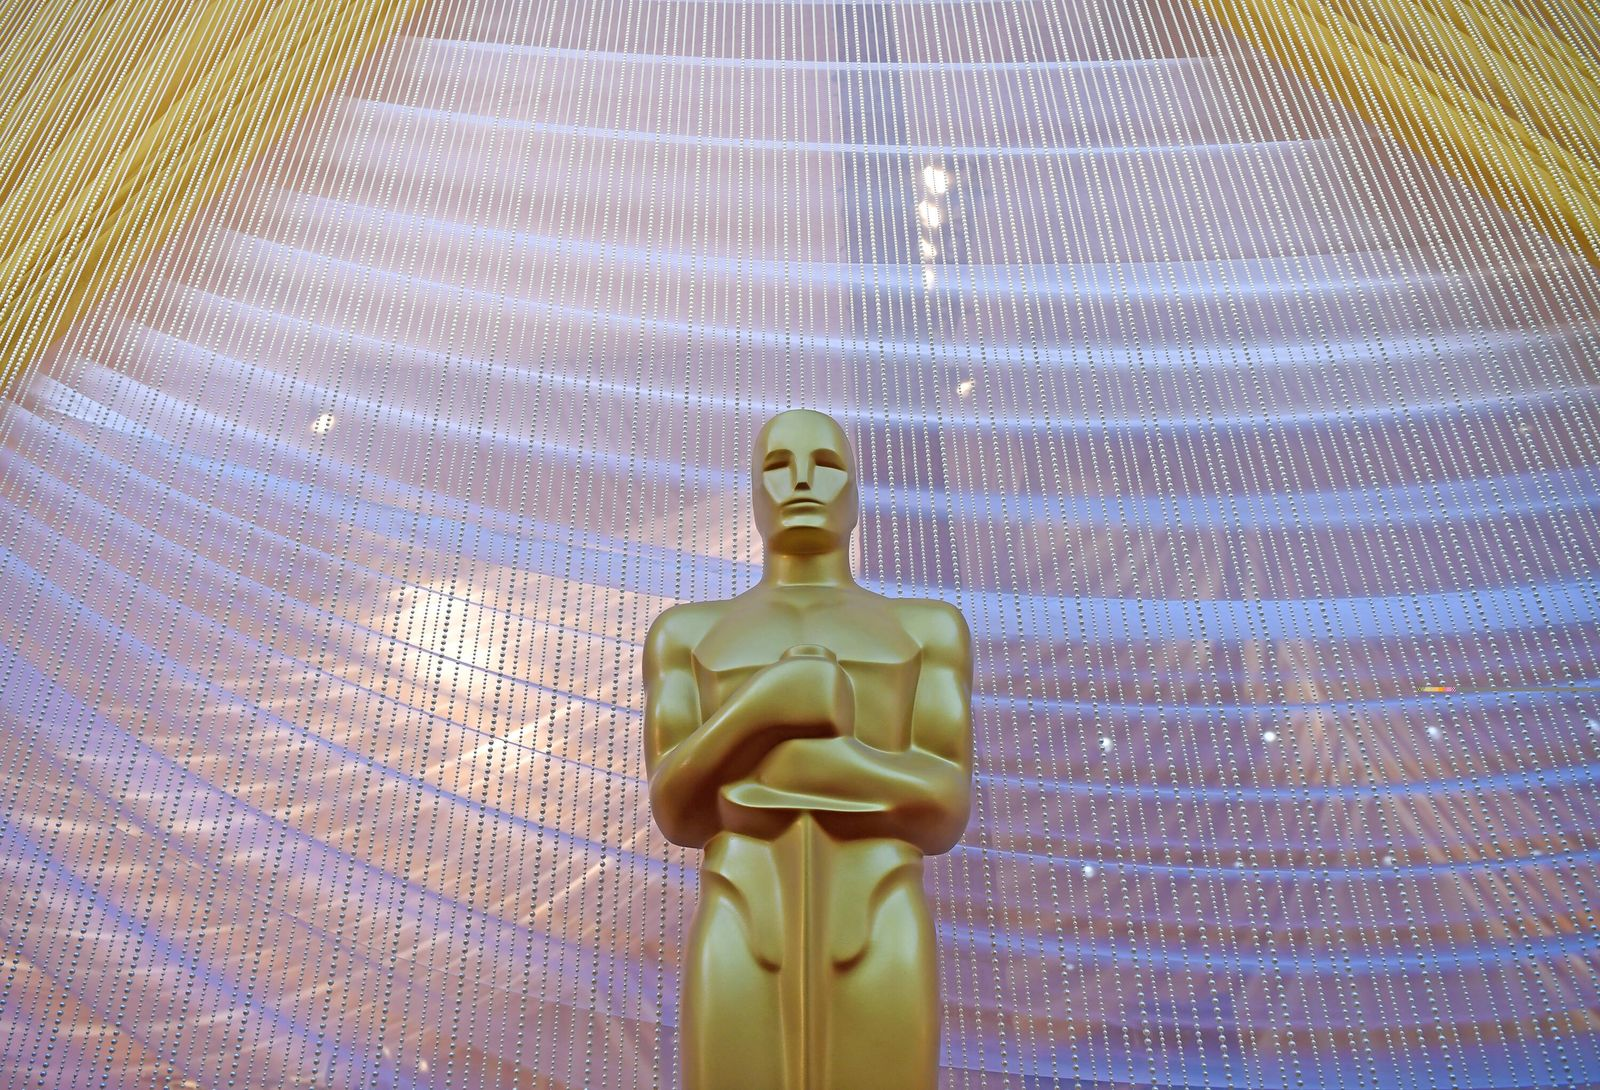 (200209) -- LOS ANGELES, Feb. 9, 2020 -- An Oscar statue is seen out of Dolby Theater during the preparations for the 92